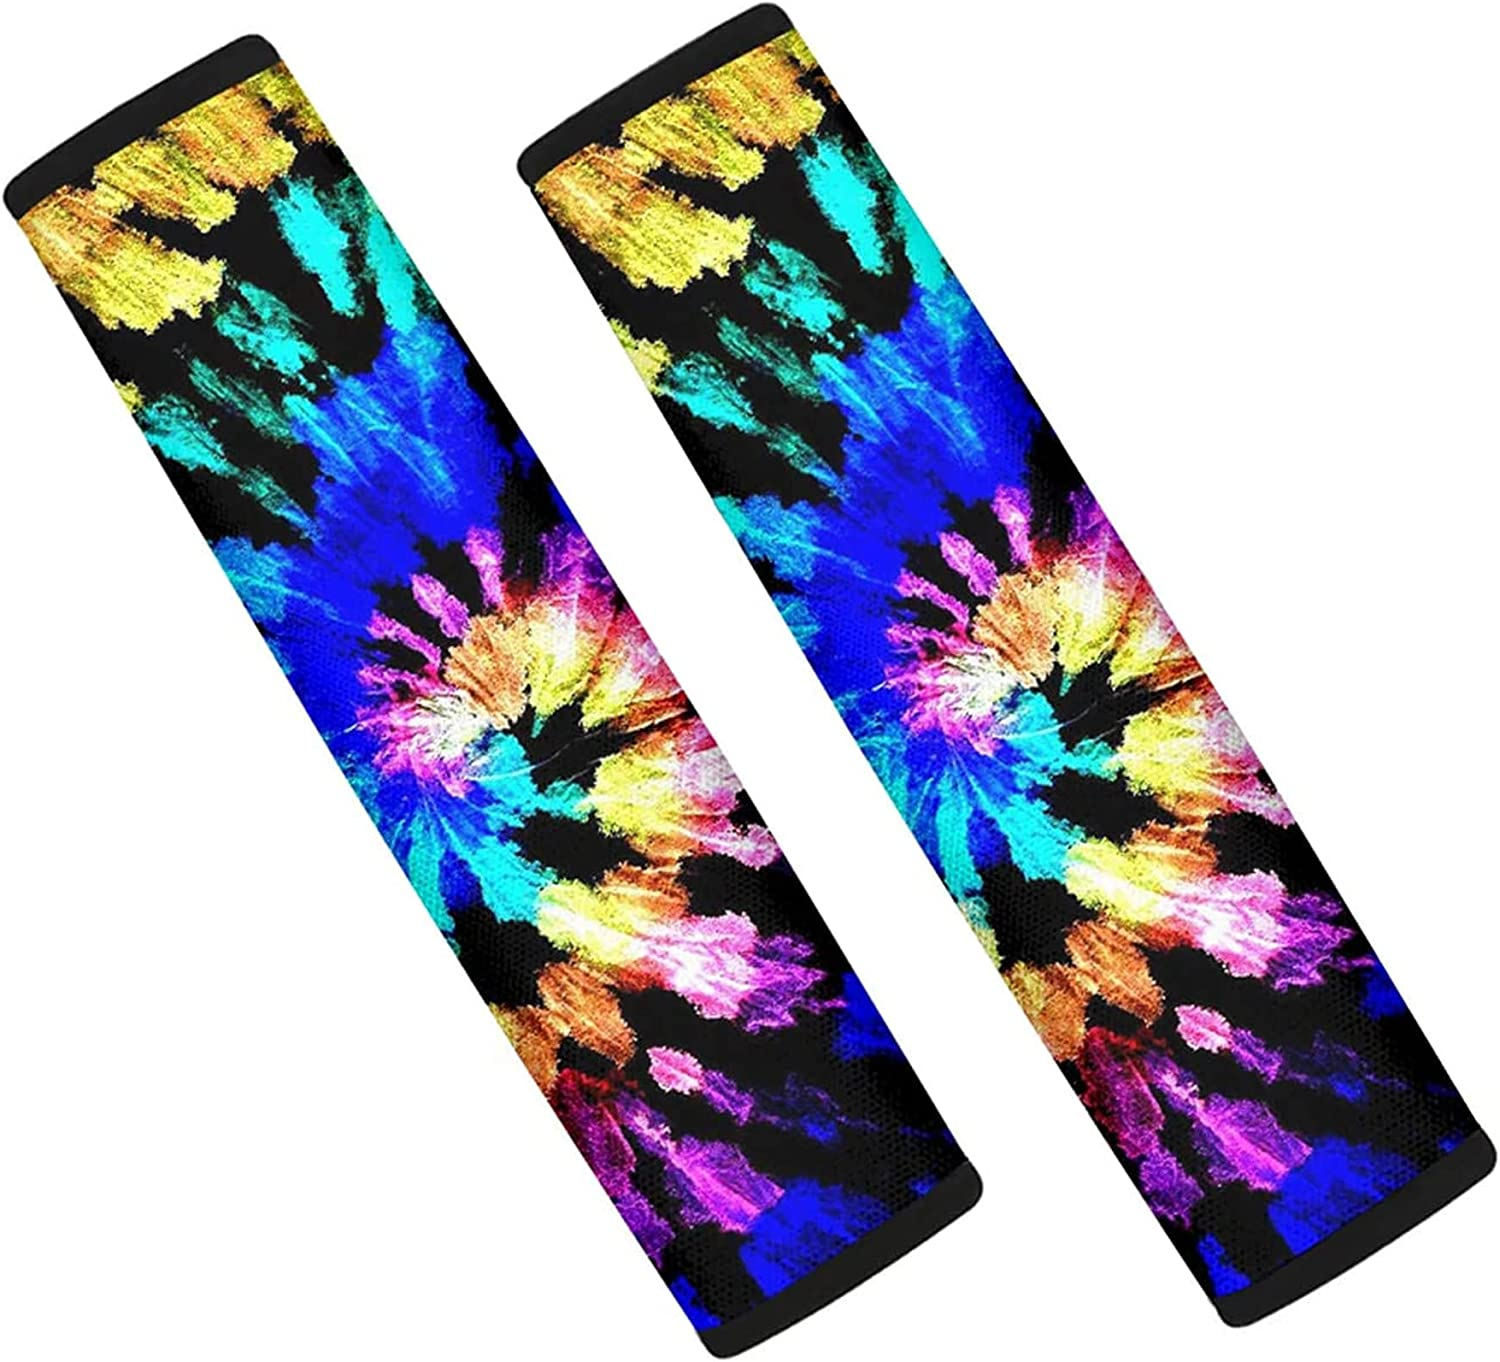 FOR U DESIGNS Auto Seat Belt Pads for Car Seat,Colorful Tie Dye Abstract Theme Backpack Shoulder Seat Belt Pad for Adults Universal Fit for Car, Truck, SUV,Set of 2